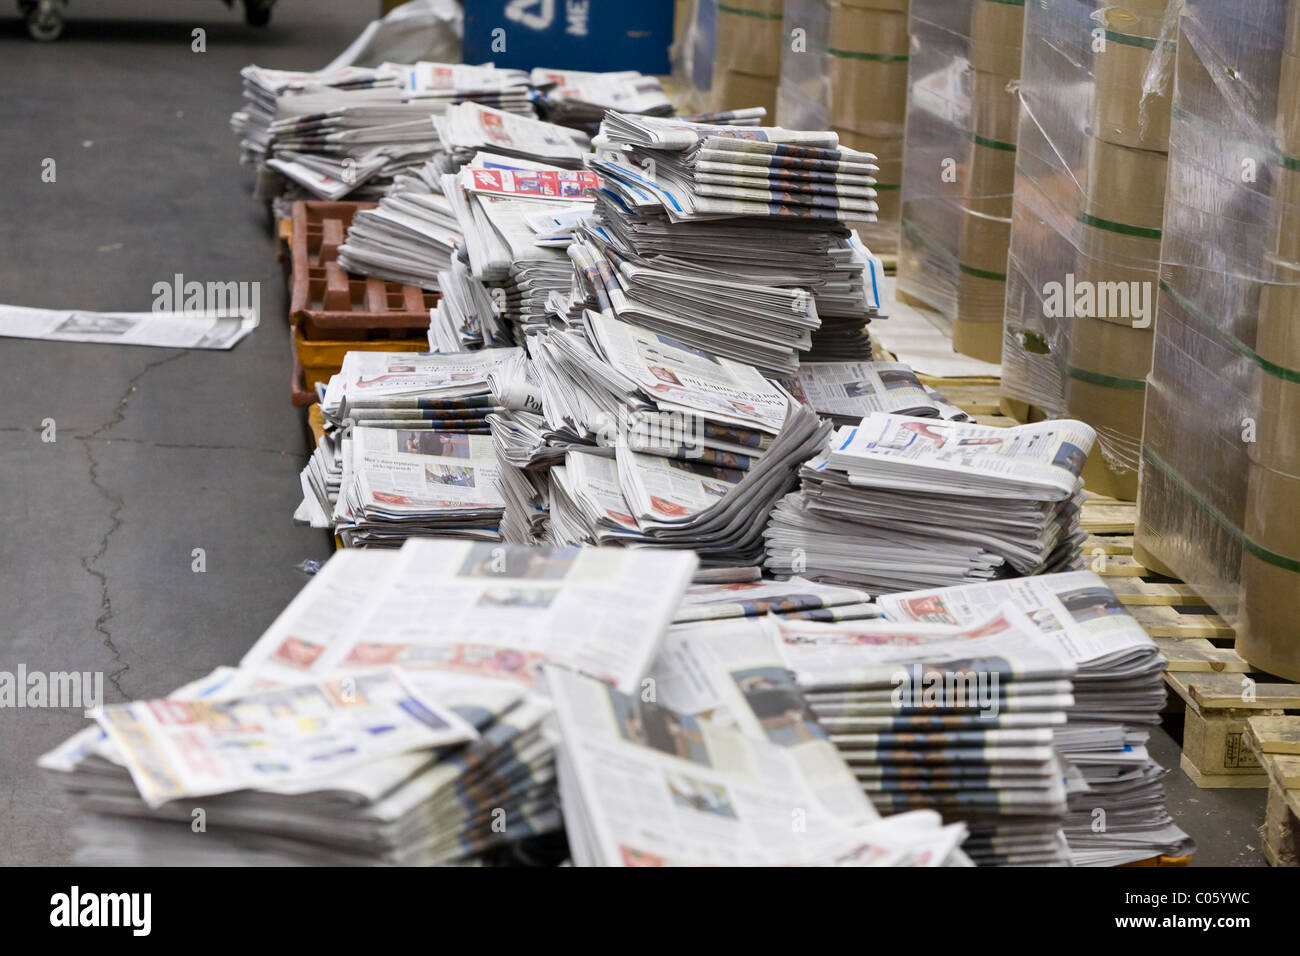 Unsold Copies Of The Ottawa Citizen Newspaper Await Recycling Ottawa Ontario Canada